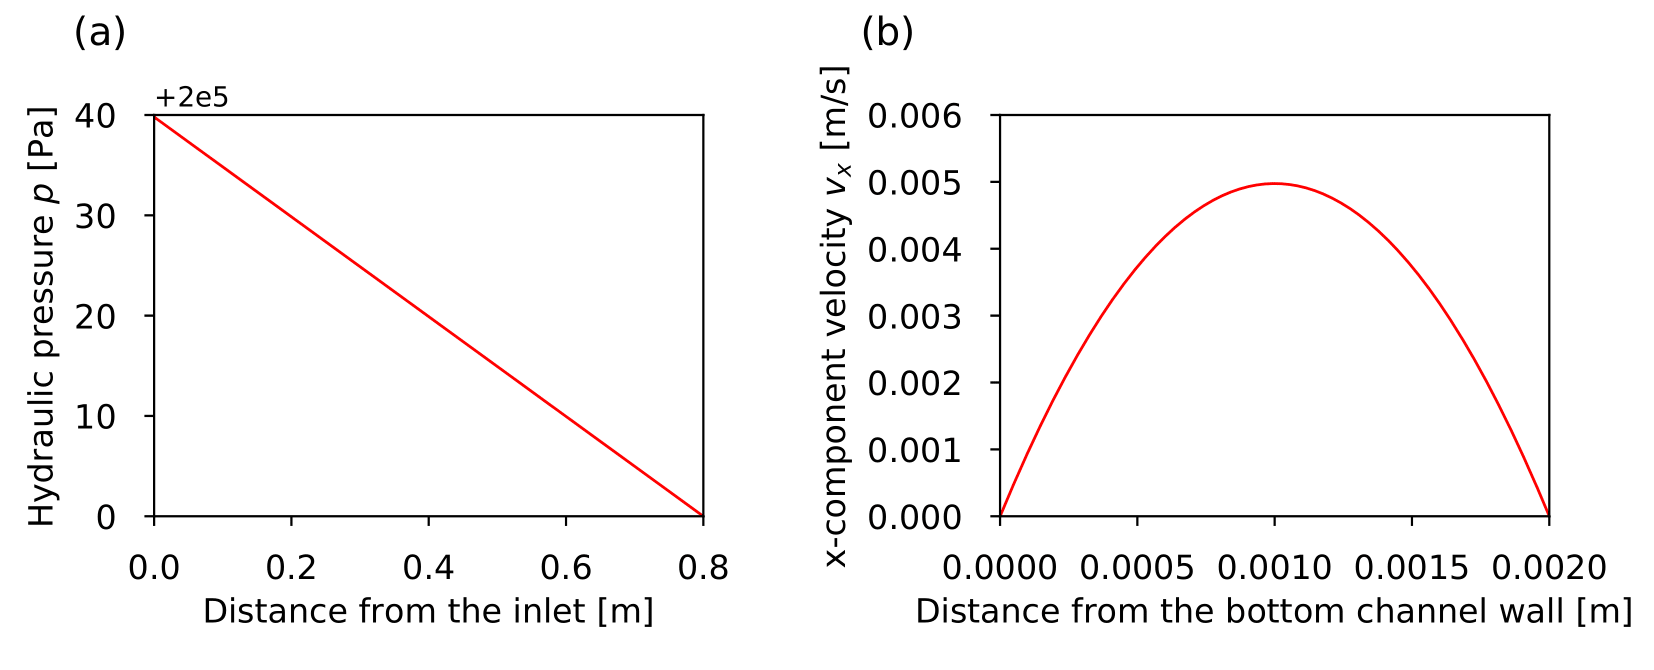 web/content/docs/benchmarks/stokes-flow/Fig2_SimulationResults.png